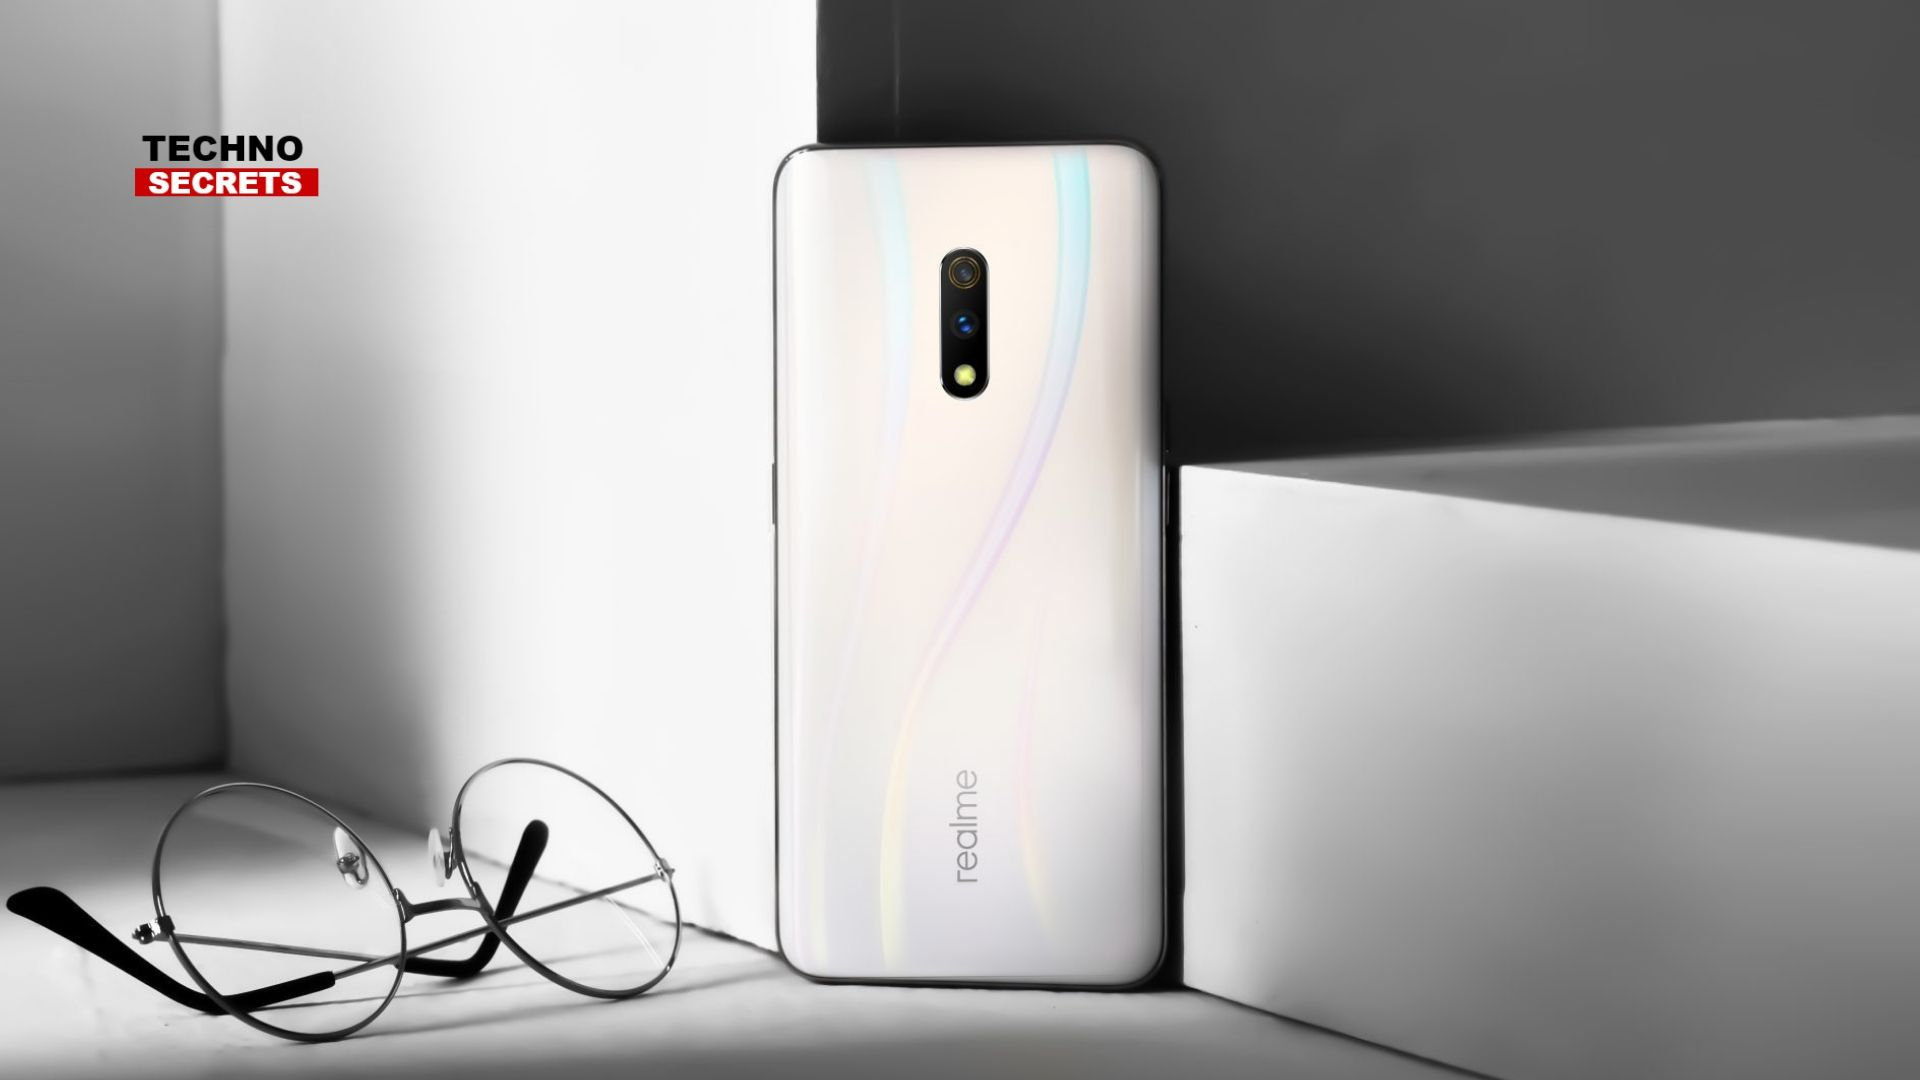 Realme New Device With Snapdragon 730G Spotted on TENAA